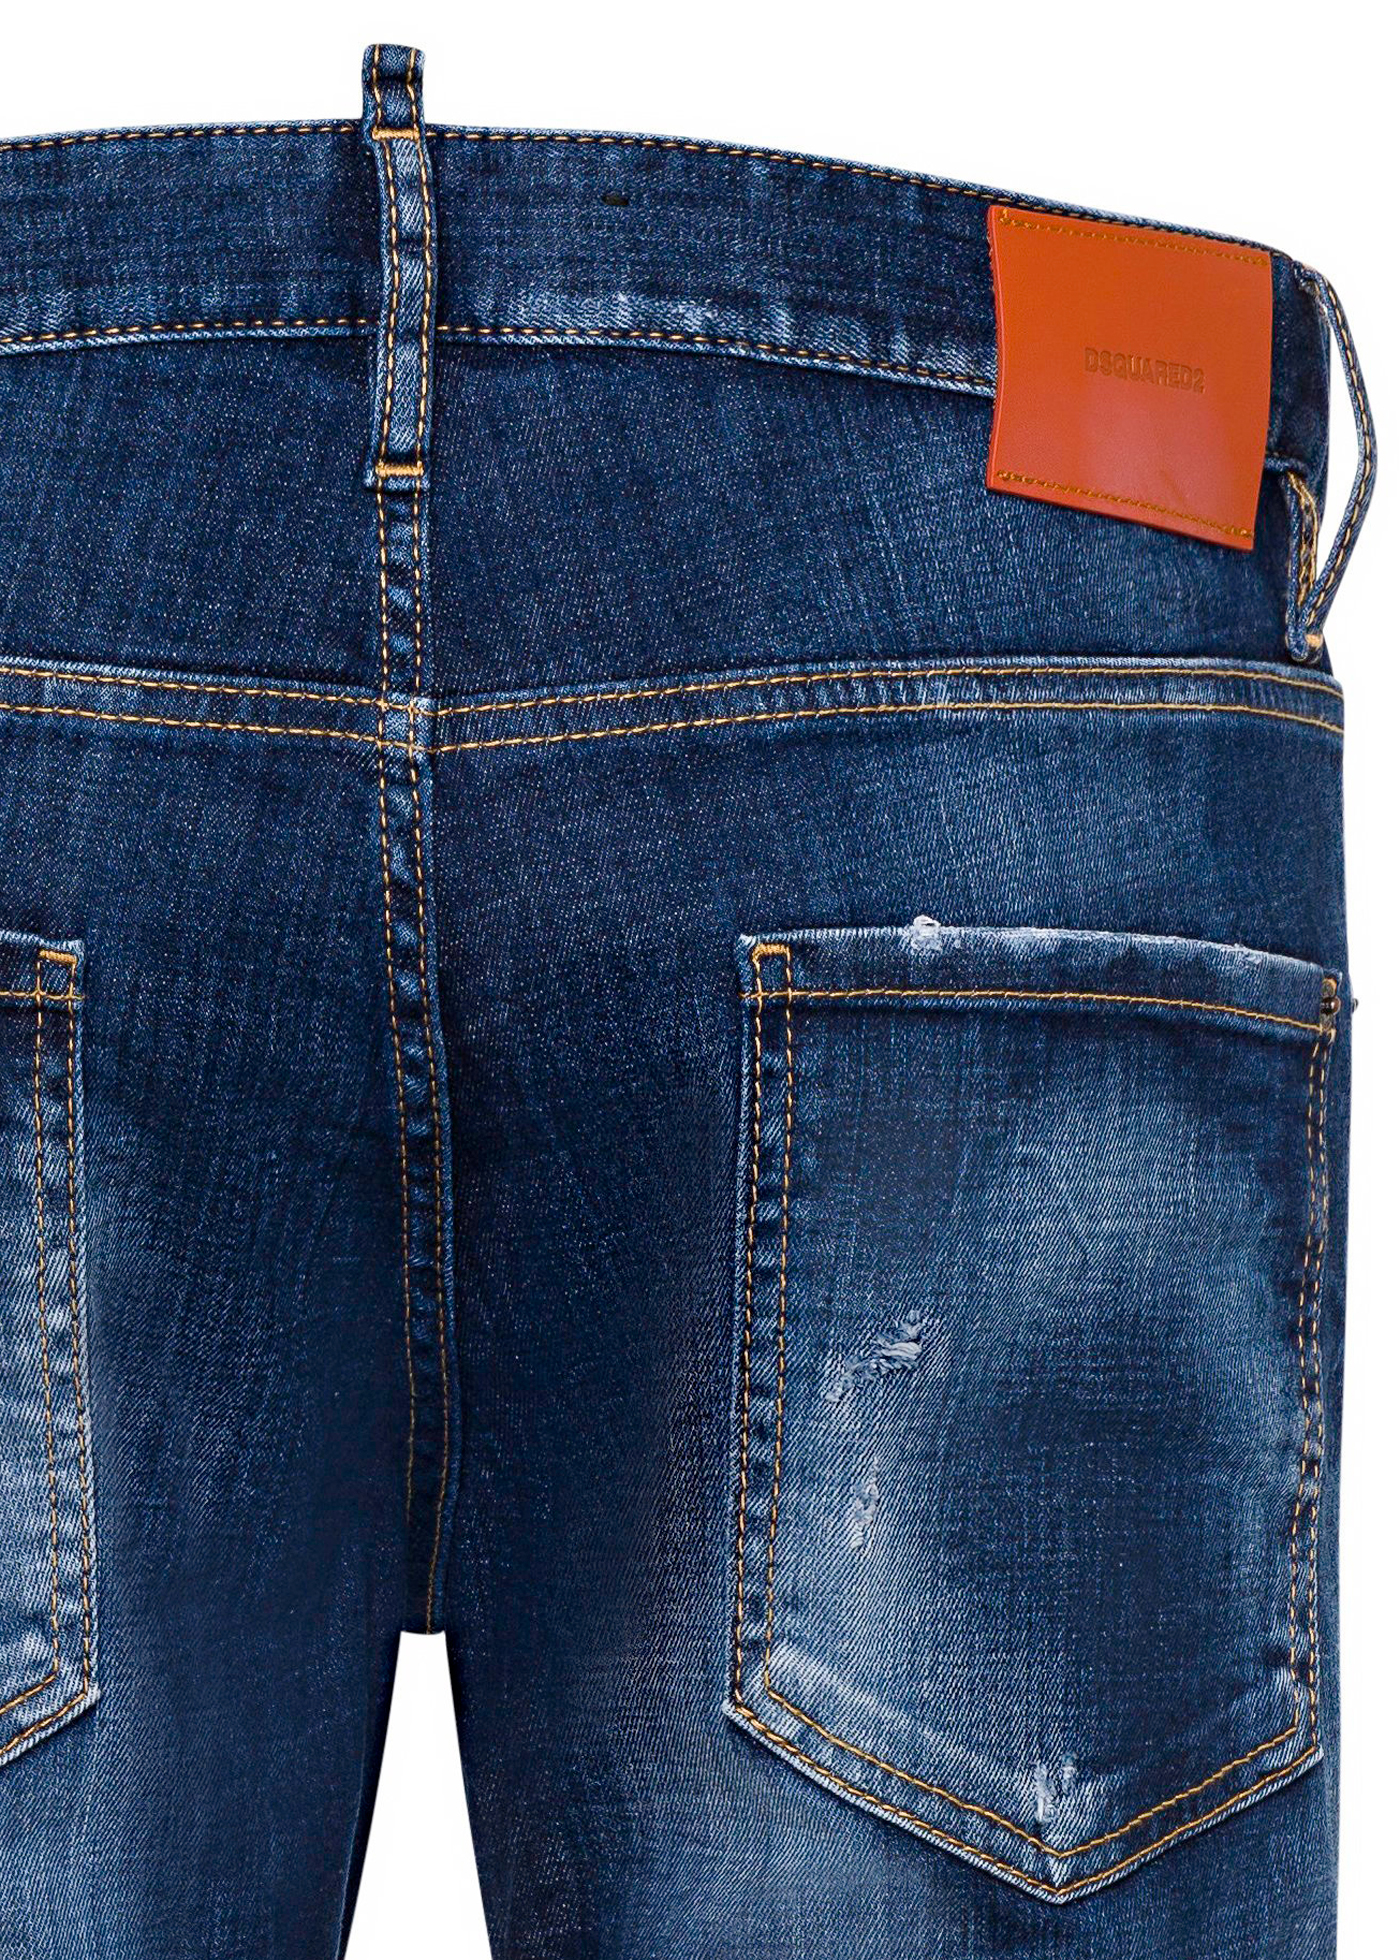 Cool Guy Jeans image number 3